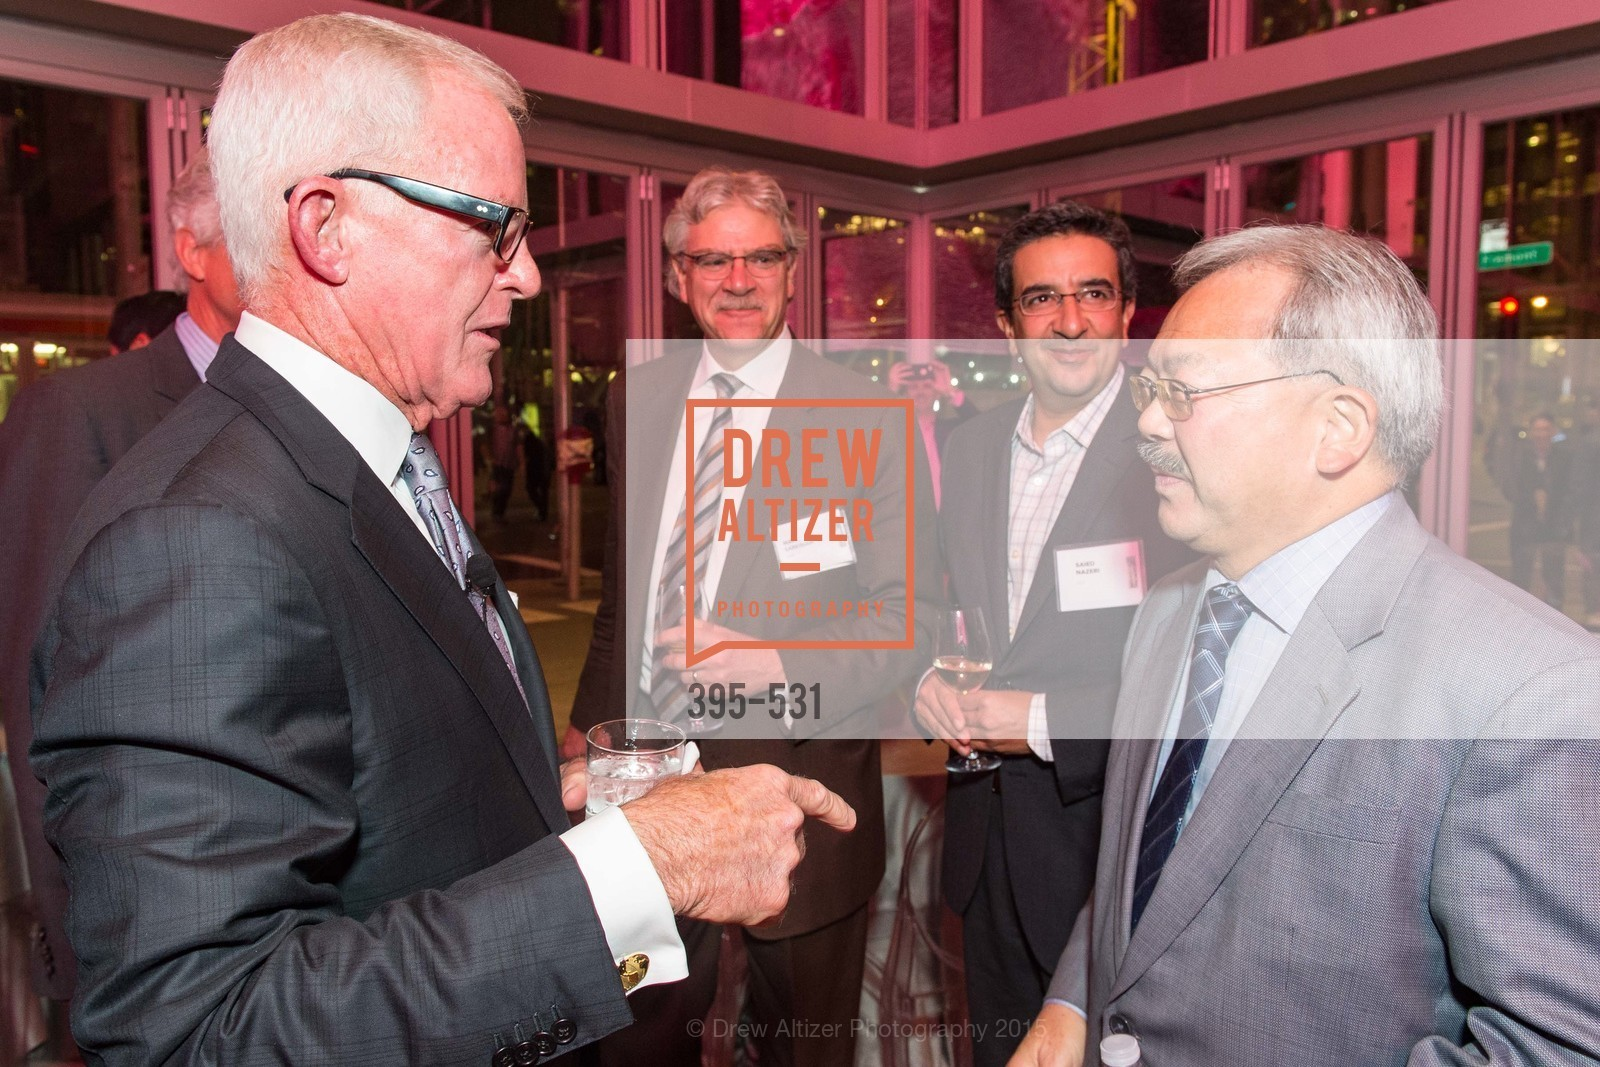 John Kilroy, Mark Sarkisian, Saied Nazeri, Mayor Ed Lee, Kilroy Unveiling Presents Virtual Depictions: San Francisco by Refik Anadol, 350 Mission Street. 350 Mission Street, November 16th, 2015,Drew Altizer, Drew Altizer Photography, full-service agency, private events, San Francisco photographer, photographer california